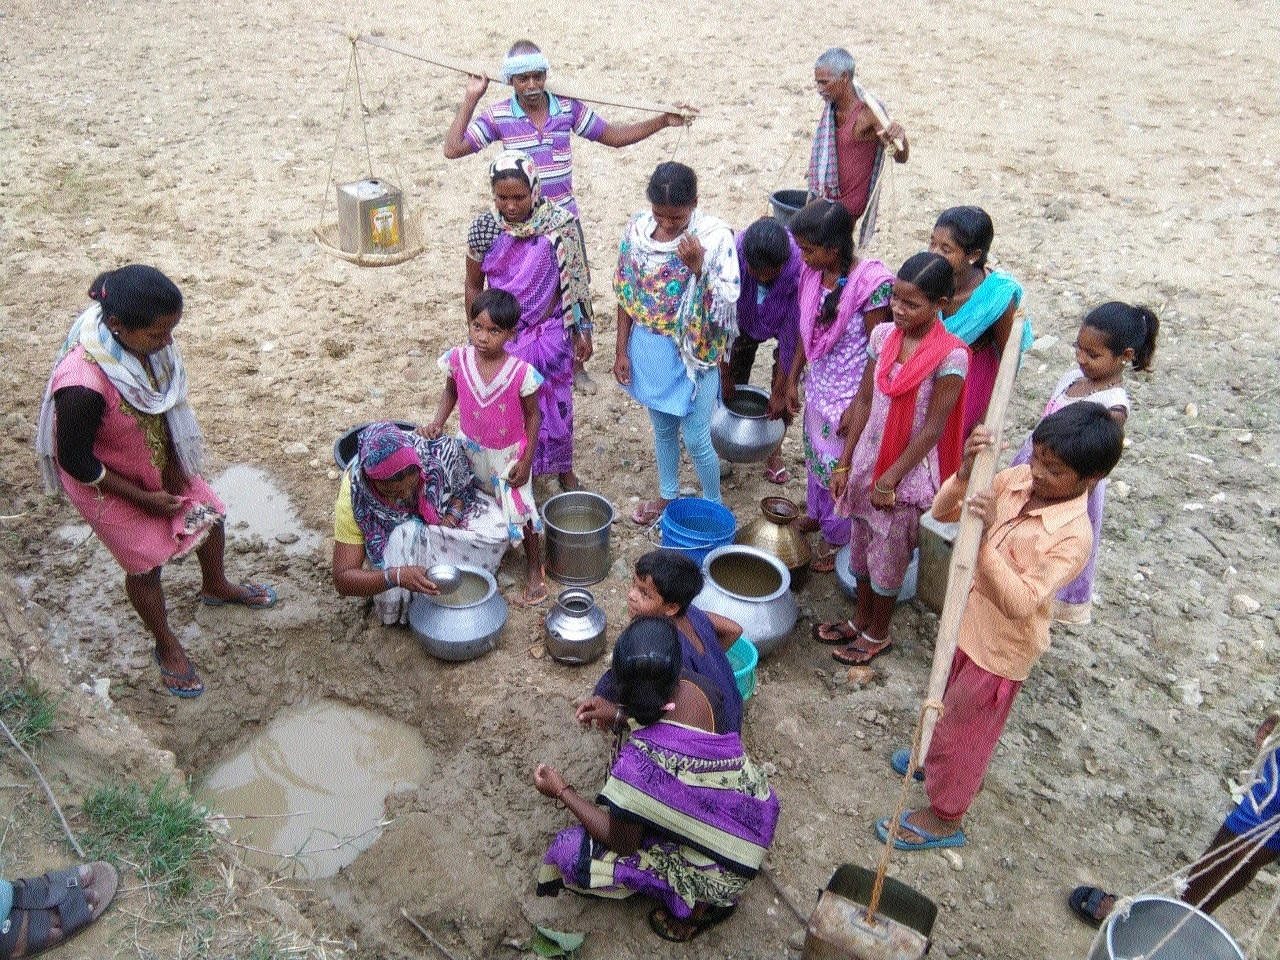 Apathy: villagers forced to drink dirty water